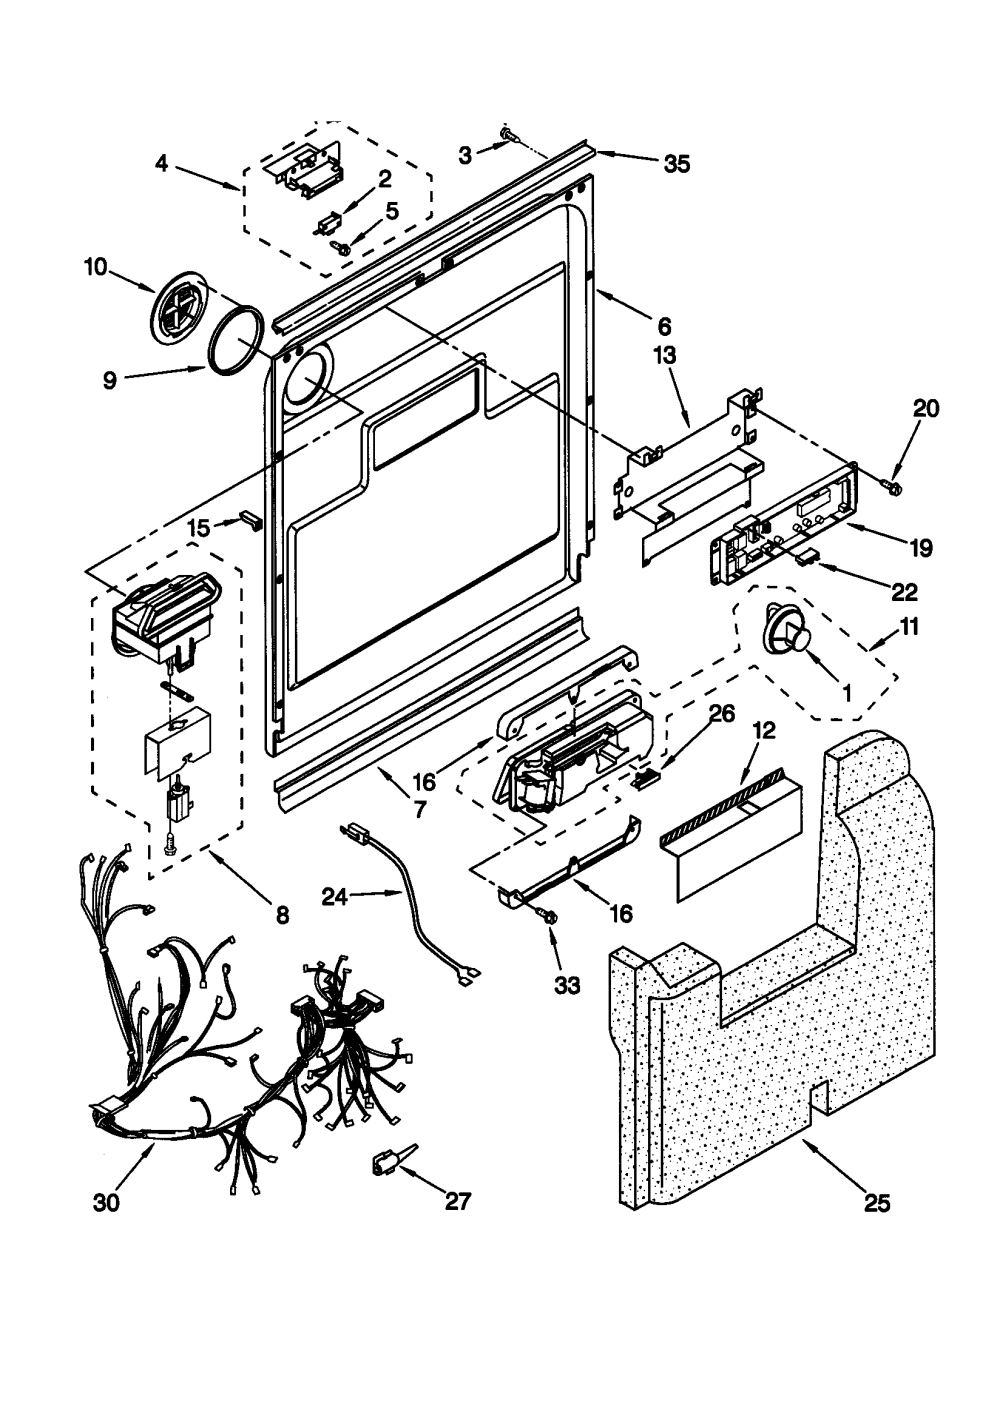 medium resolution of kenmore dishwasher schematic wiring diagram meta kenmore dishwasher schematic